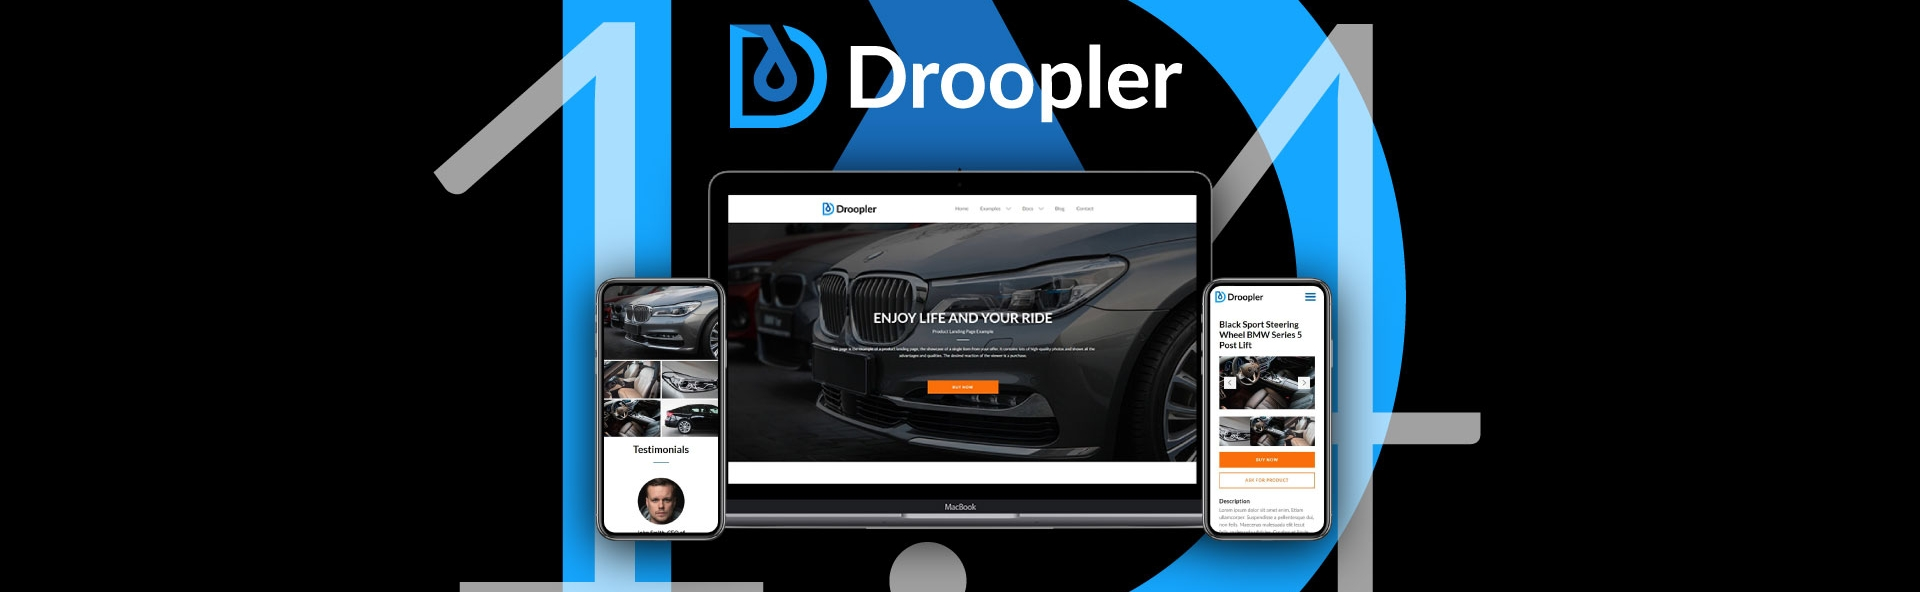 Droopler.1.4 visualisation. Logo of the Drupal distribution in the background.